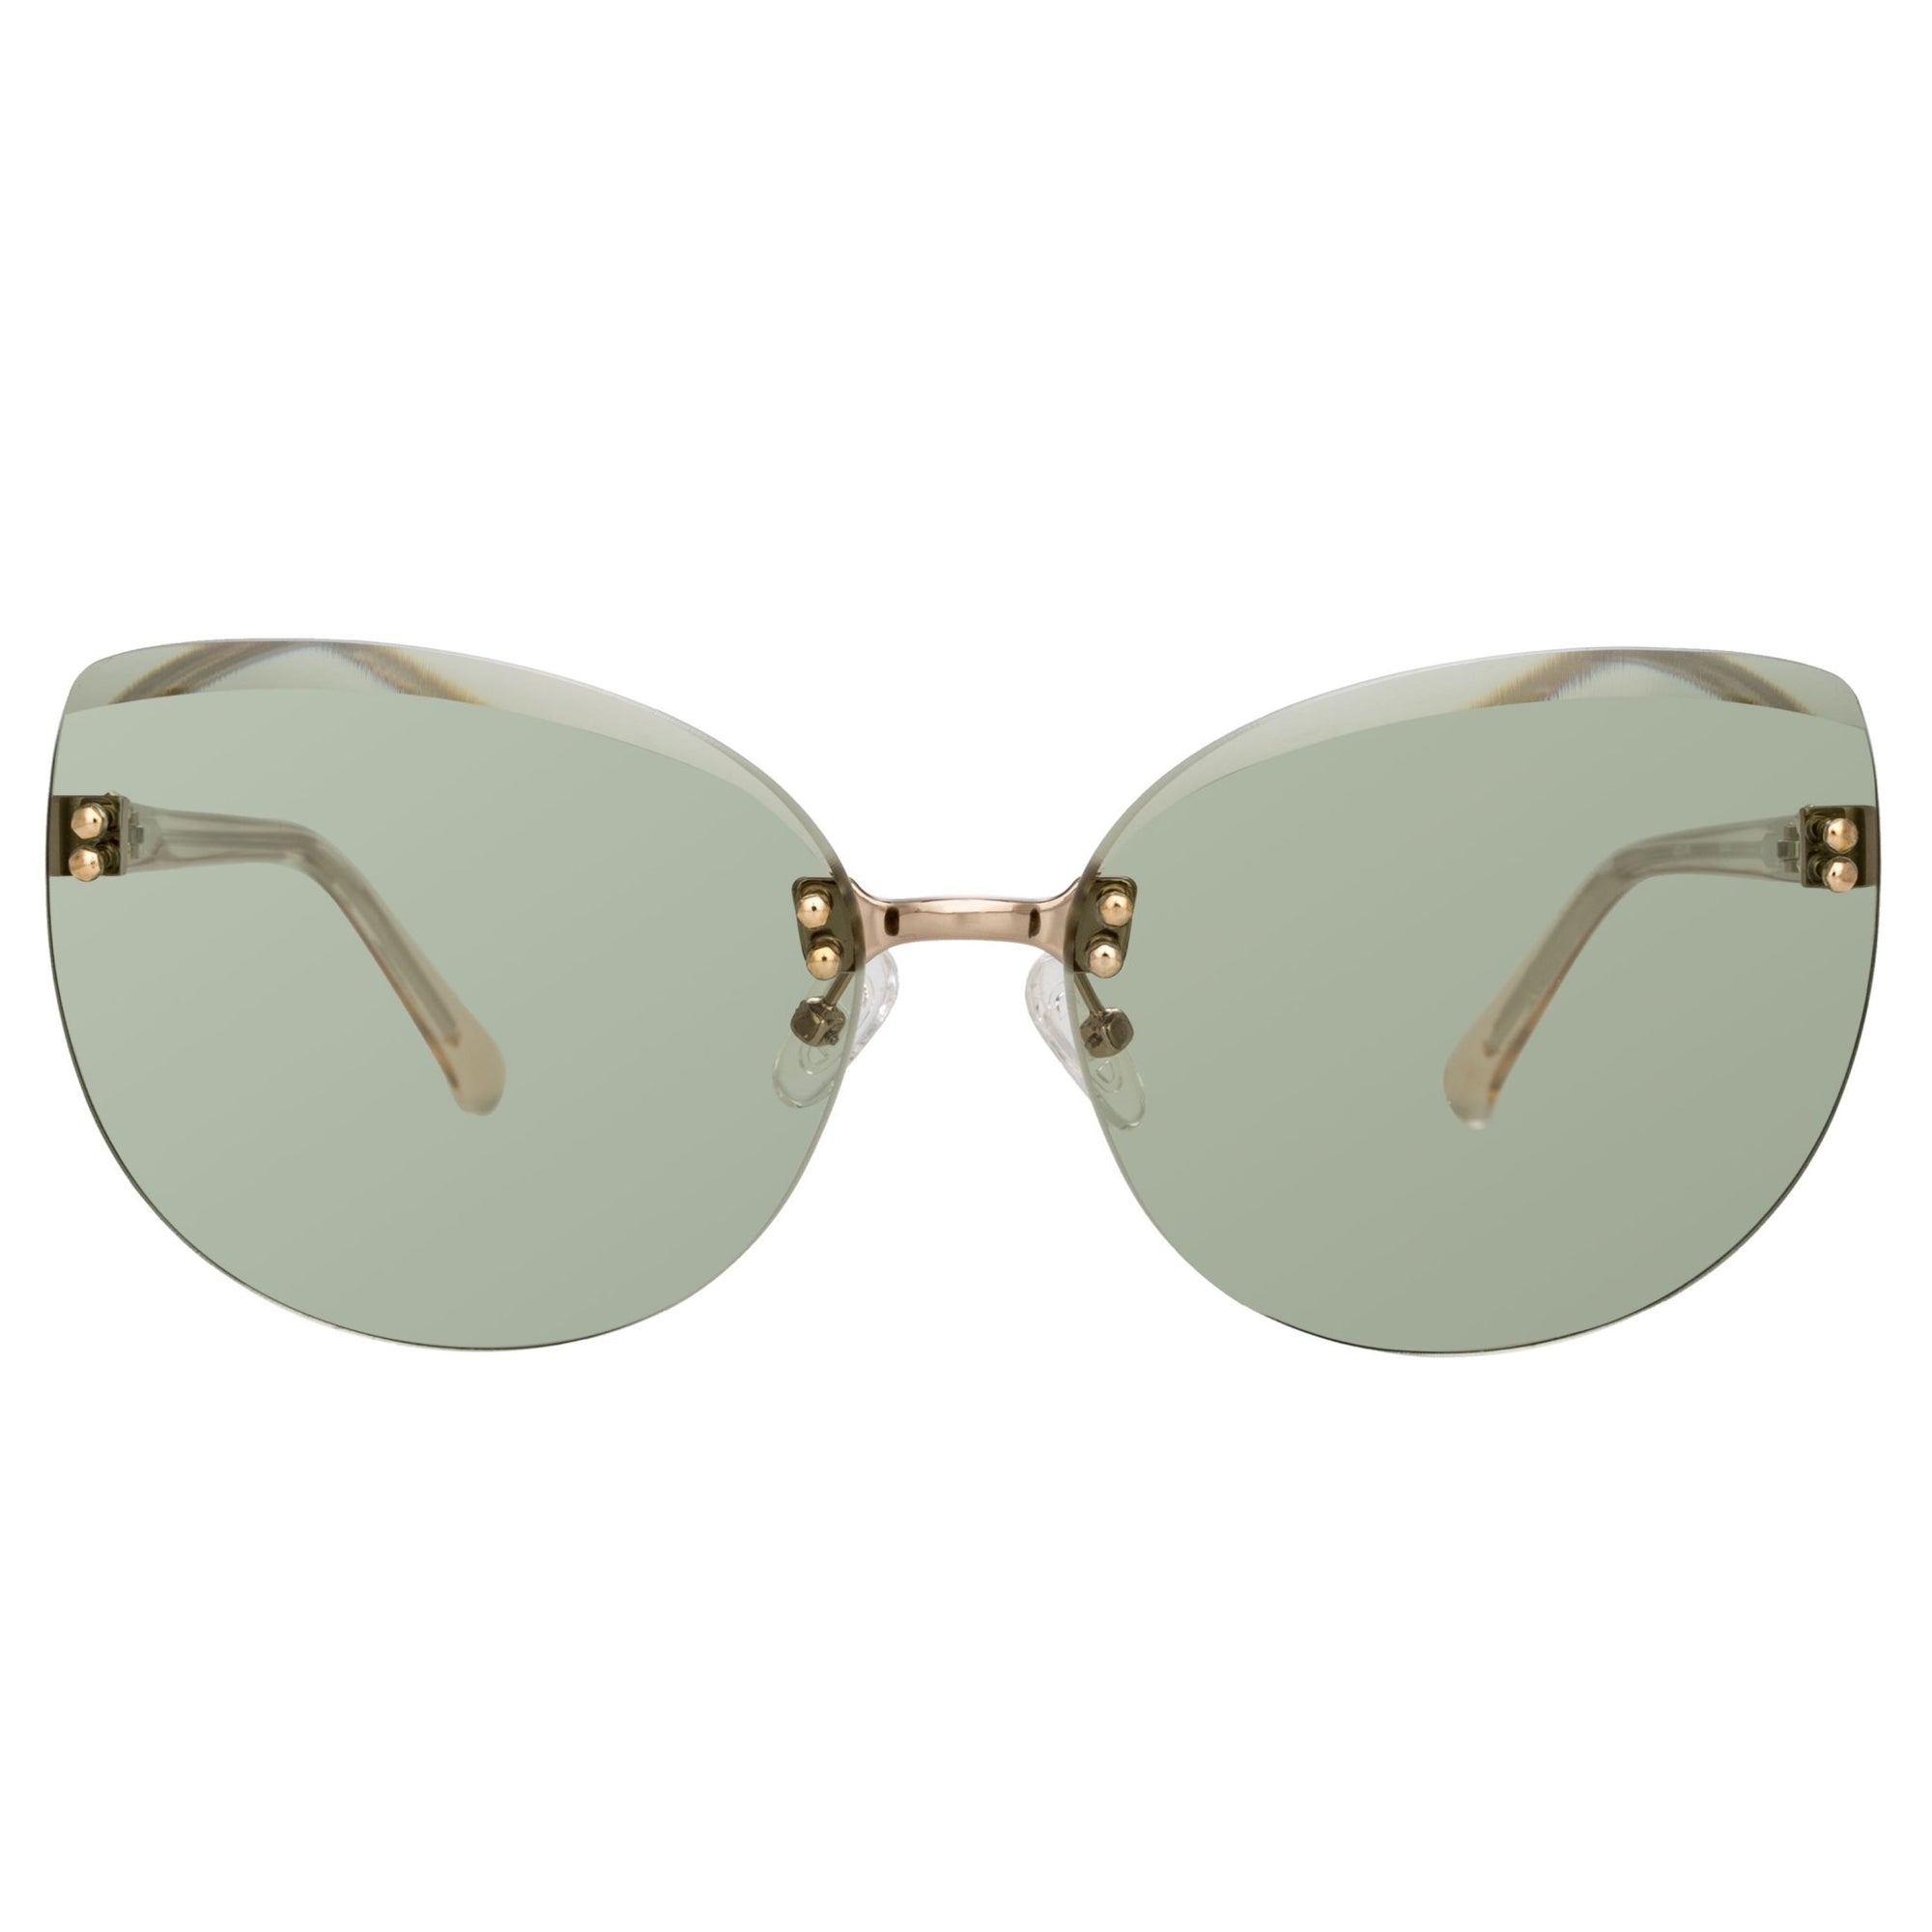 NO 21 Sunglasses Women's Cat Eye Light Gold with CAT1 Green Lenses - N21S15C3SUN - Watches & Crystals